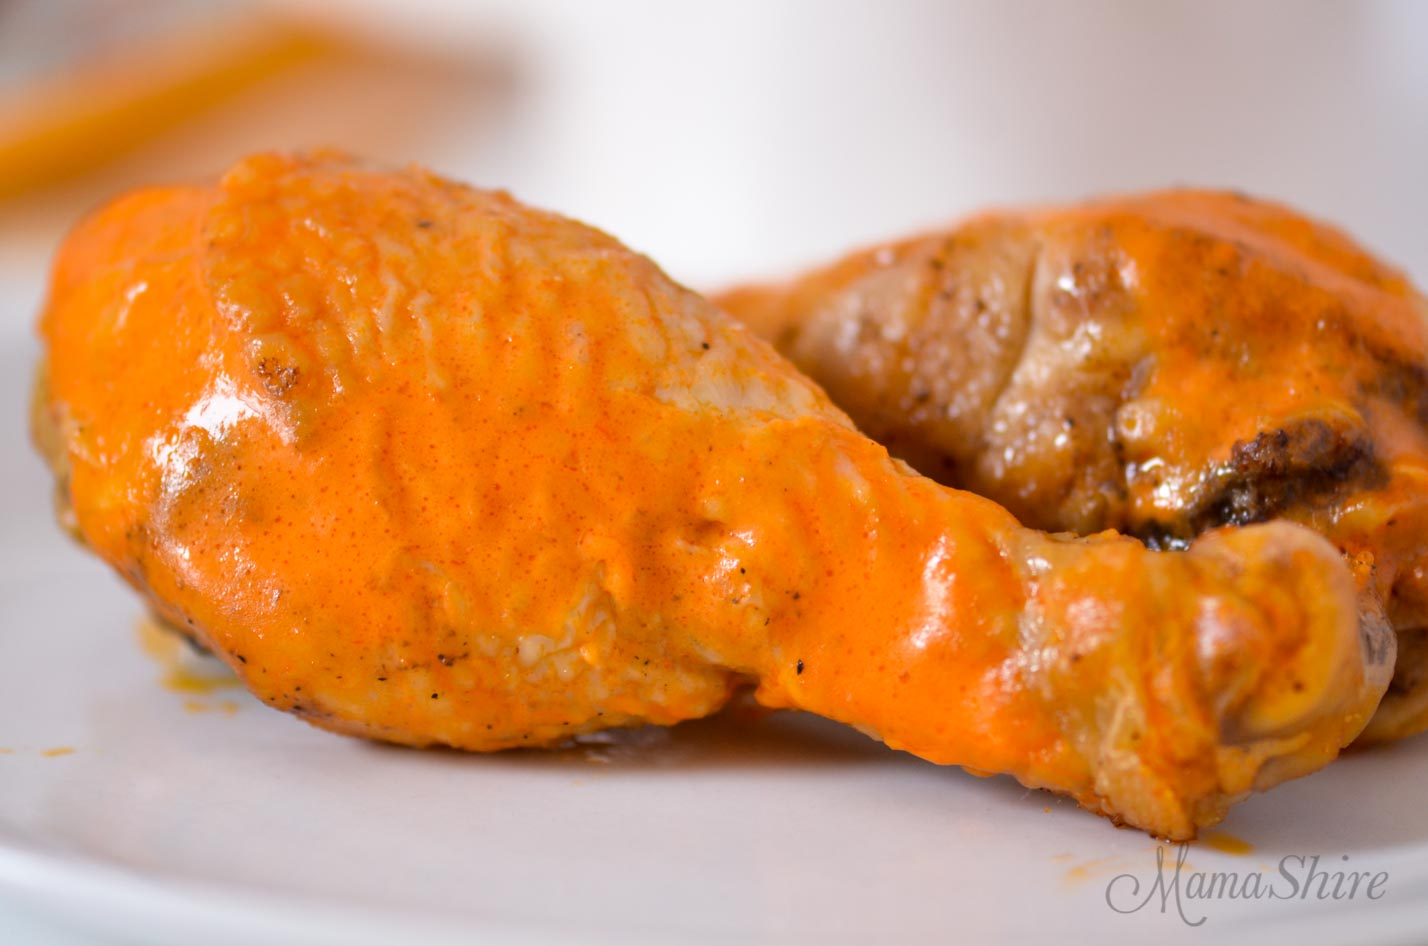 Air-Fried Buffalo Chicken Drumsticks made in an air-fryer. Trim Healthy Mama-S